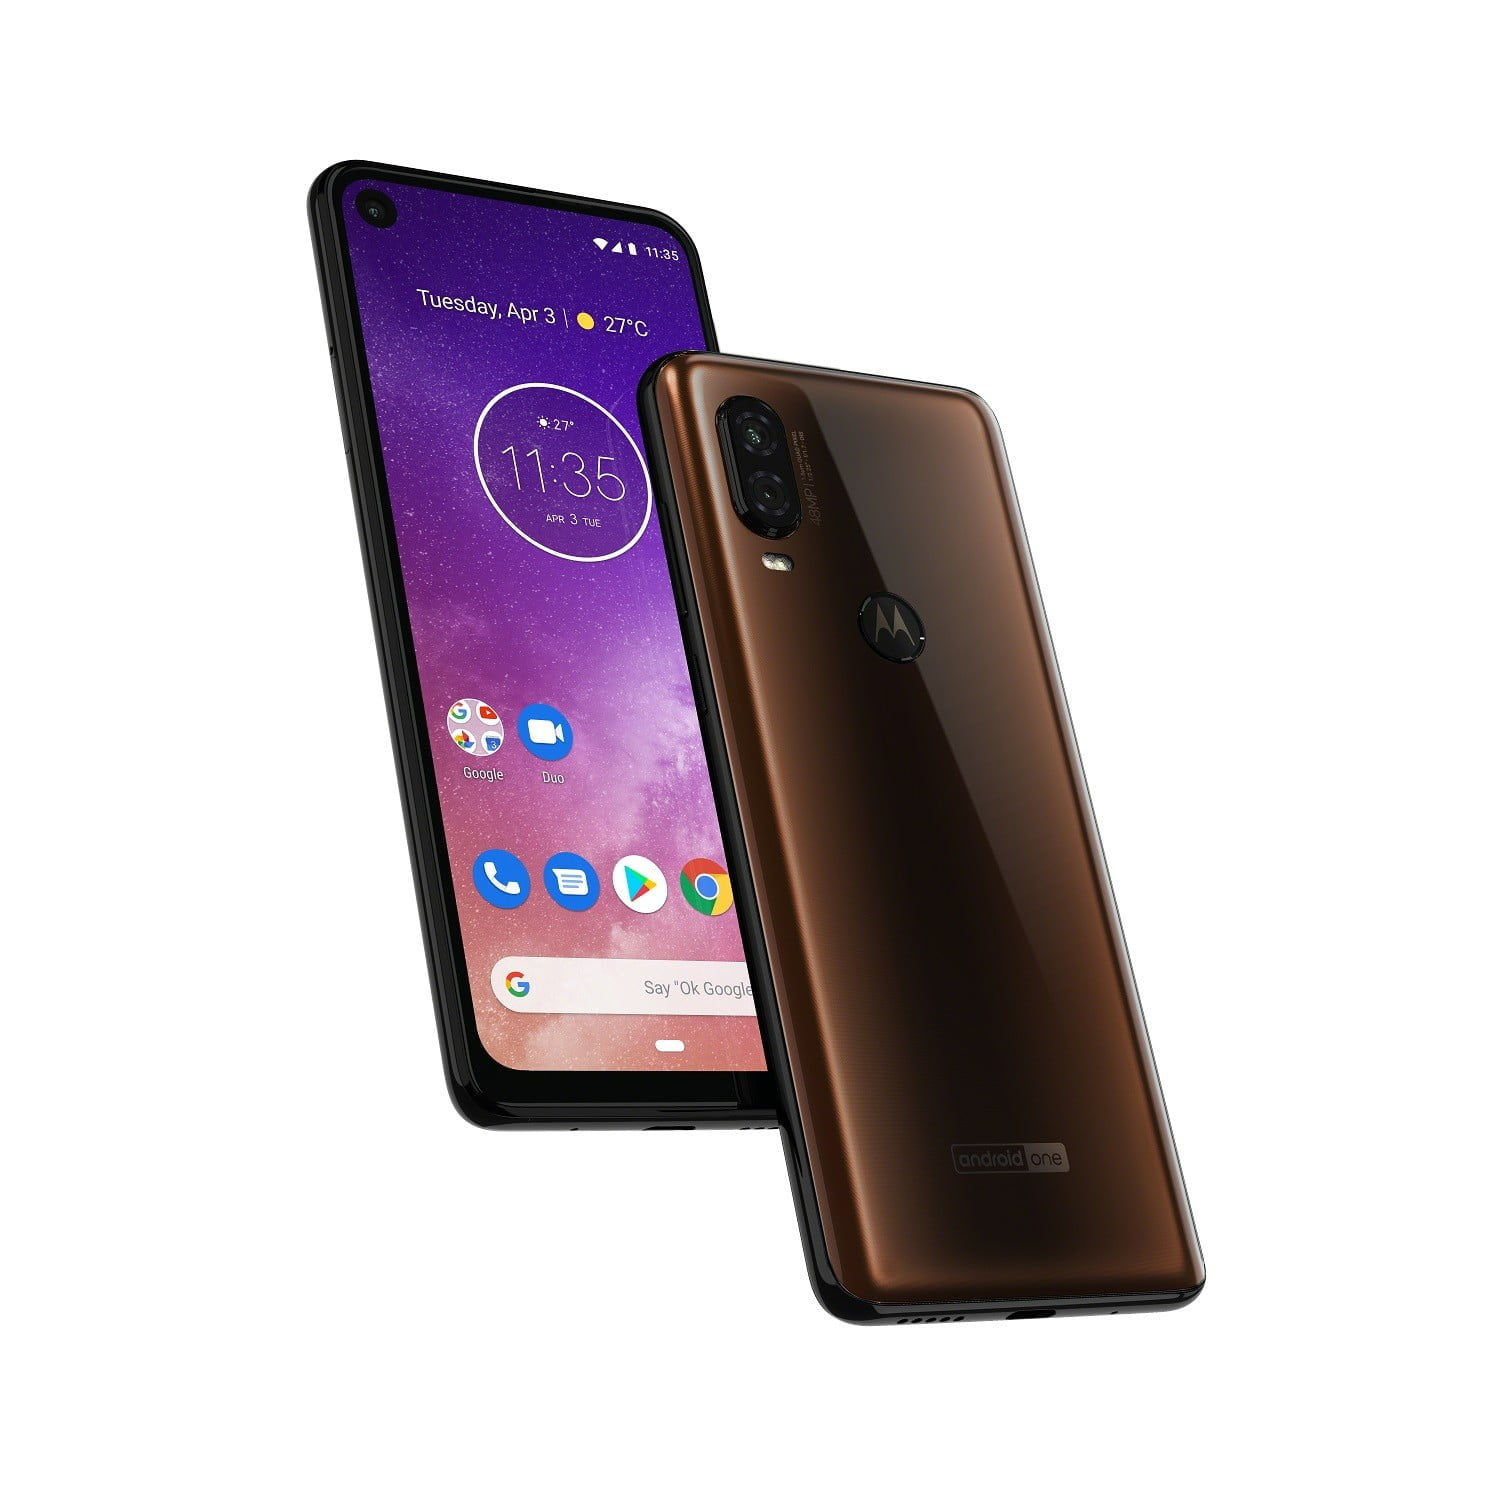 Motorola One Vision: Specs, Features, Release Date, and Price